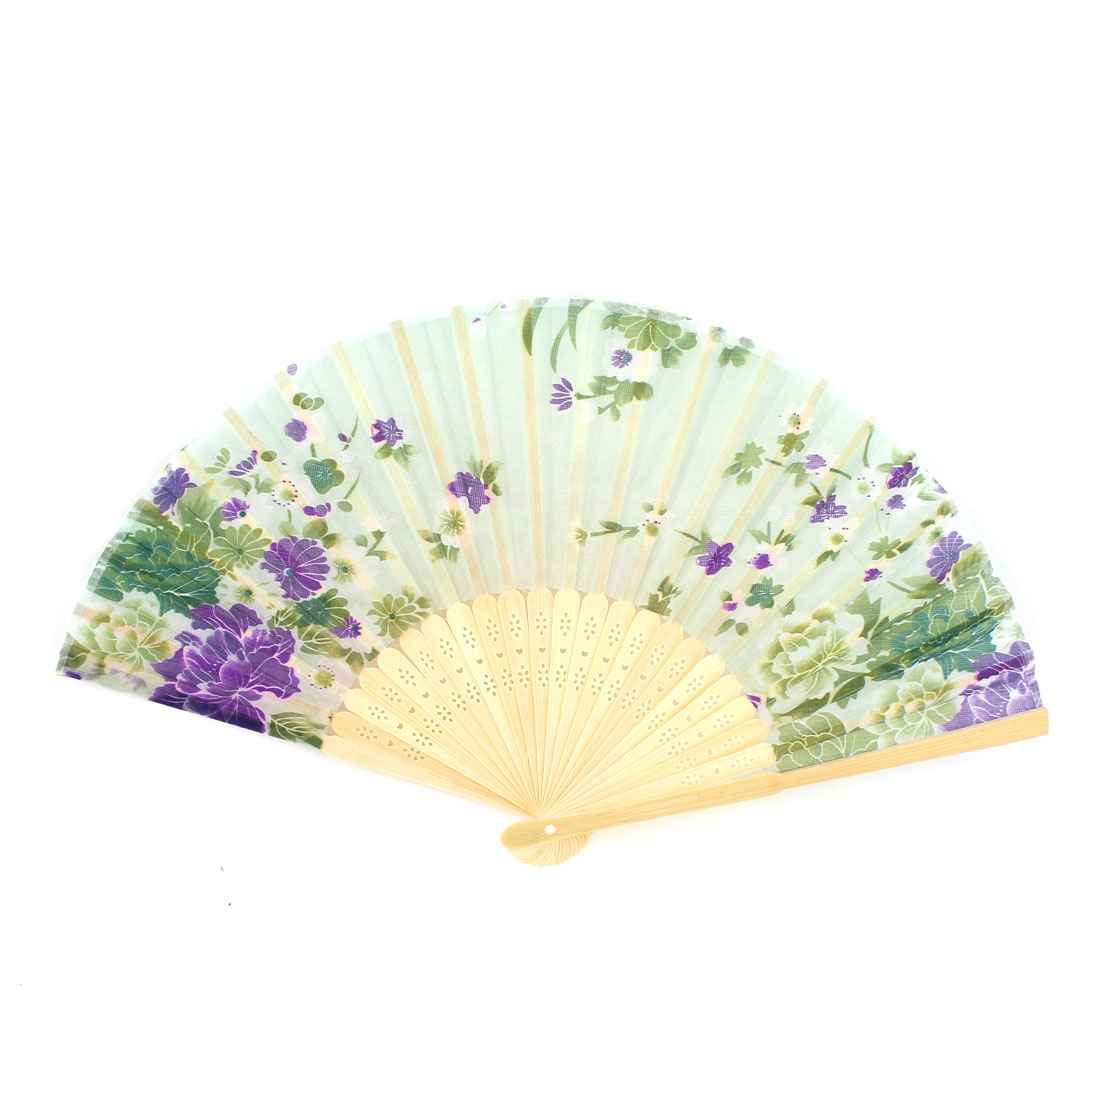 "14.2"" Green Fabric Flower Print Bamboo Hollow Out Ribs Folding Hand Fan"